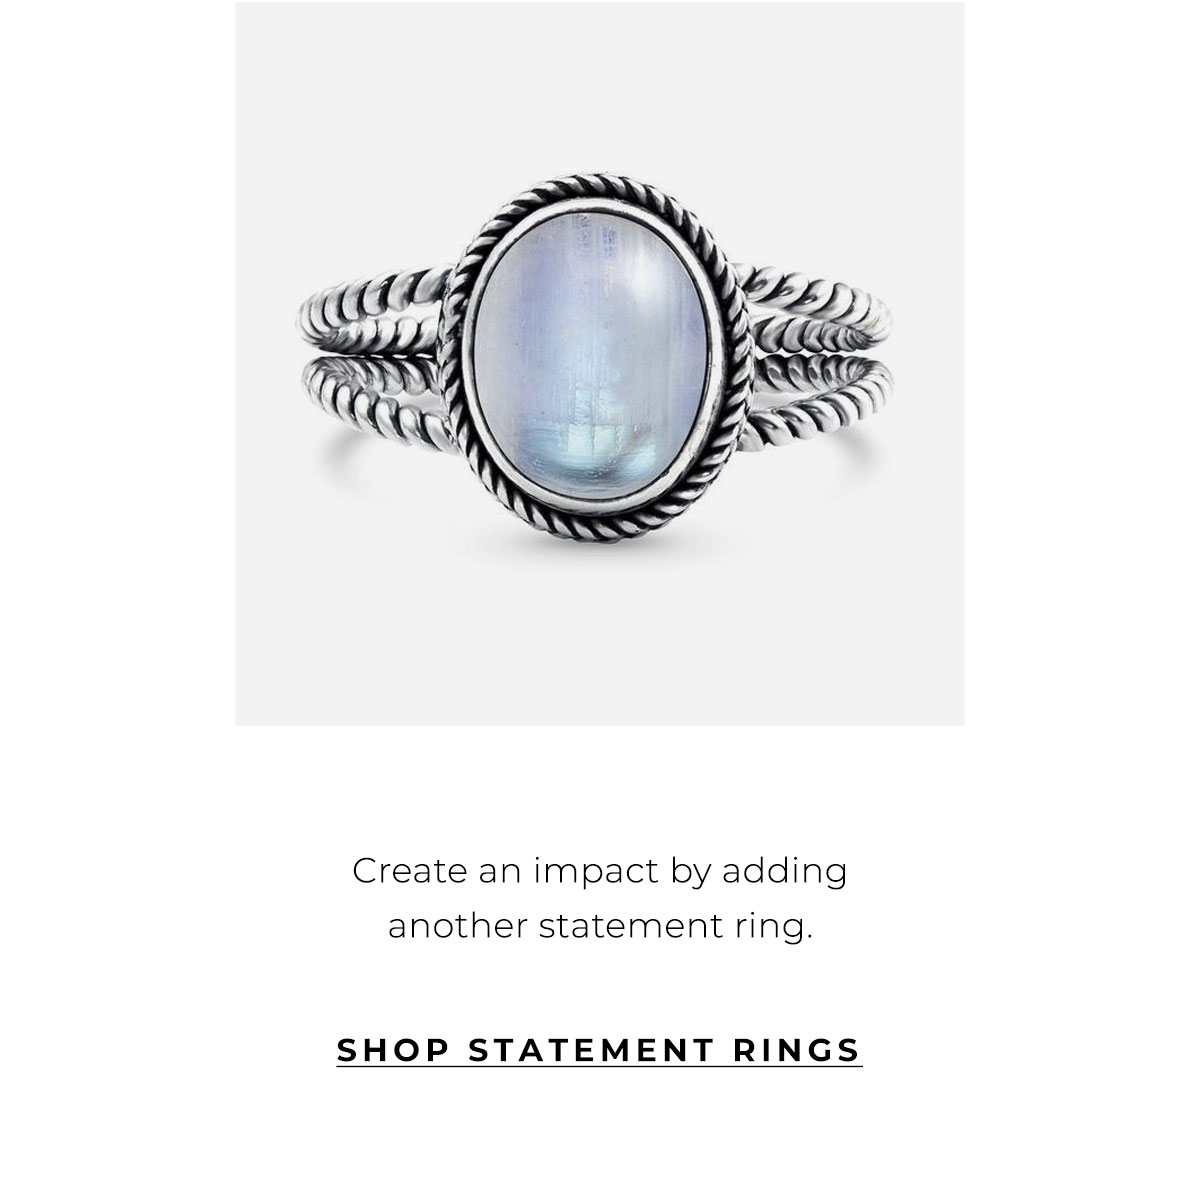 Create an impact by adding another statement ring. | SHOP STATEMENT RINGS